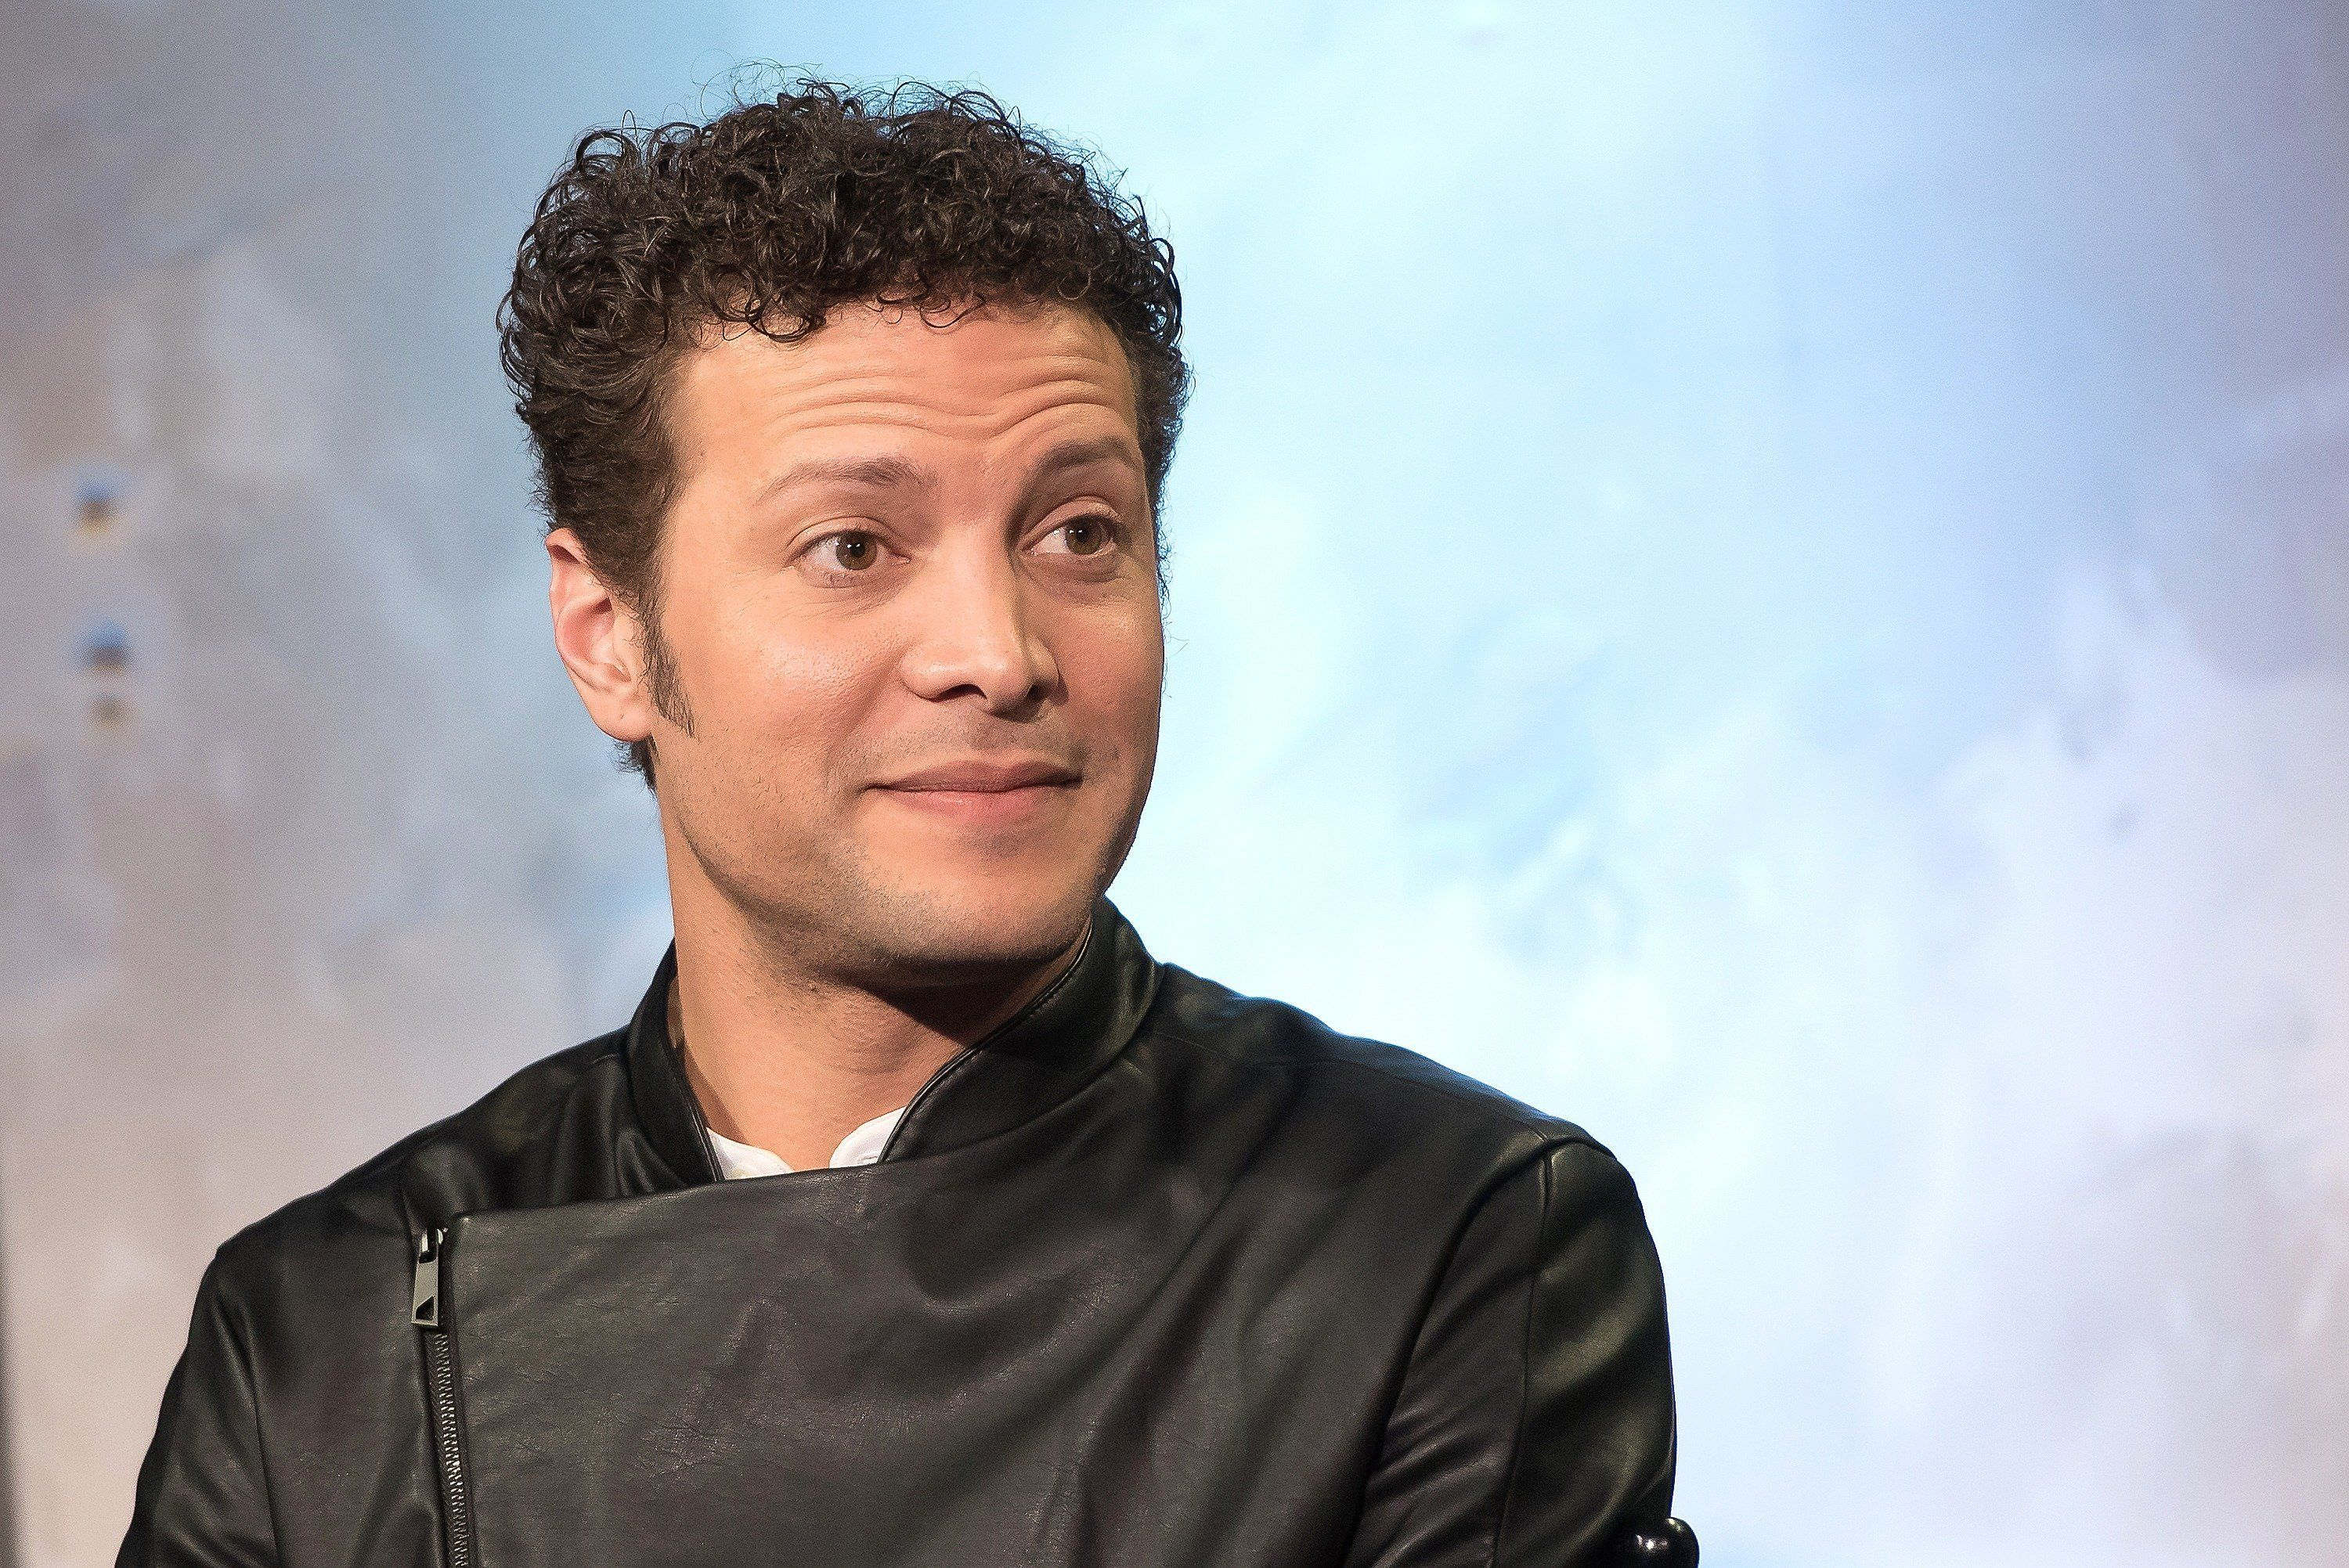 Where In The World Is Justin Guarini?